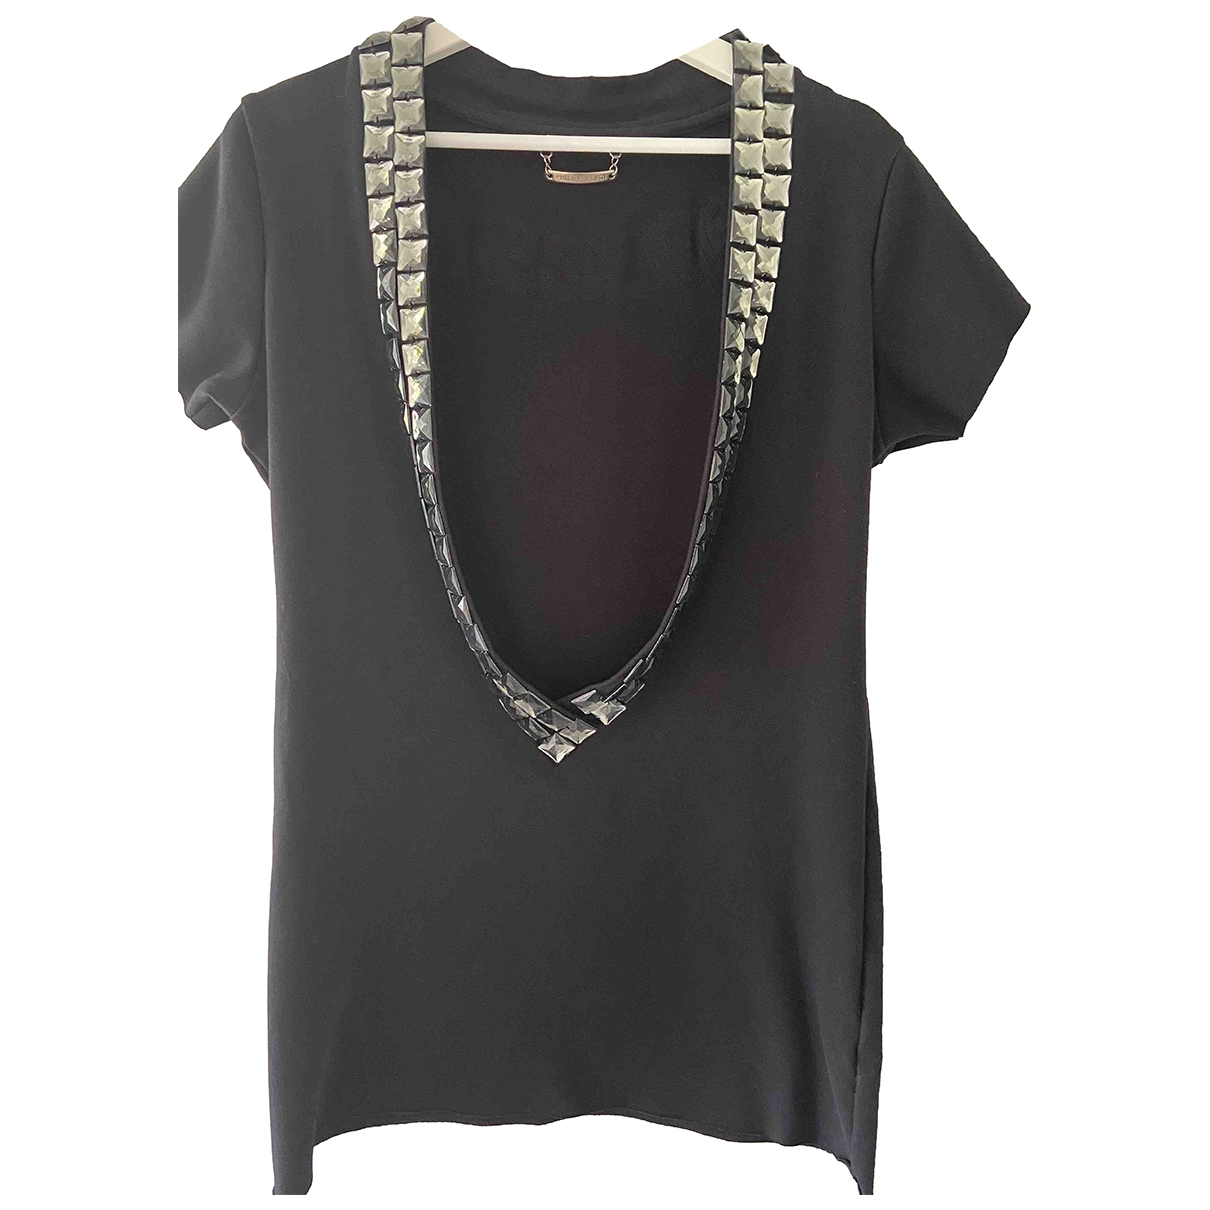 Philipp Plein \N Black Cotton  top for Women L International